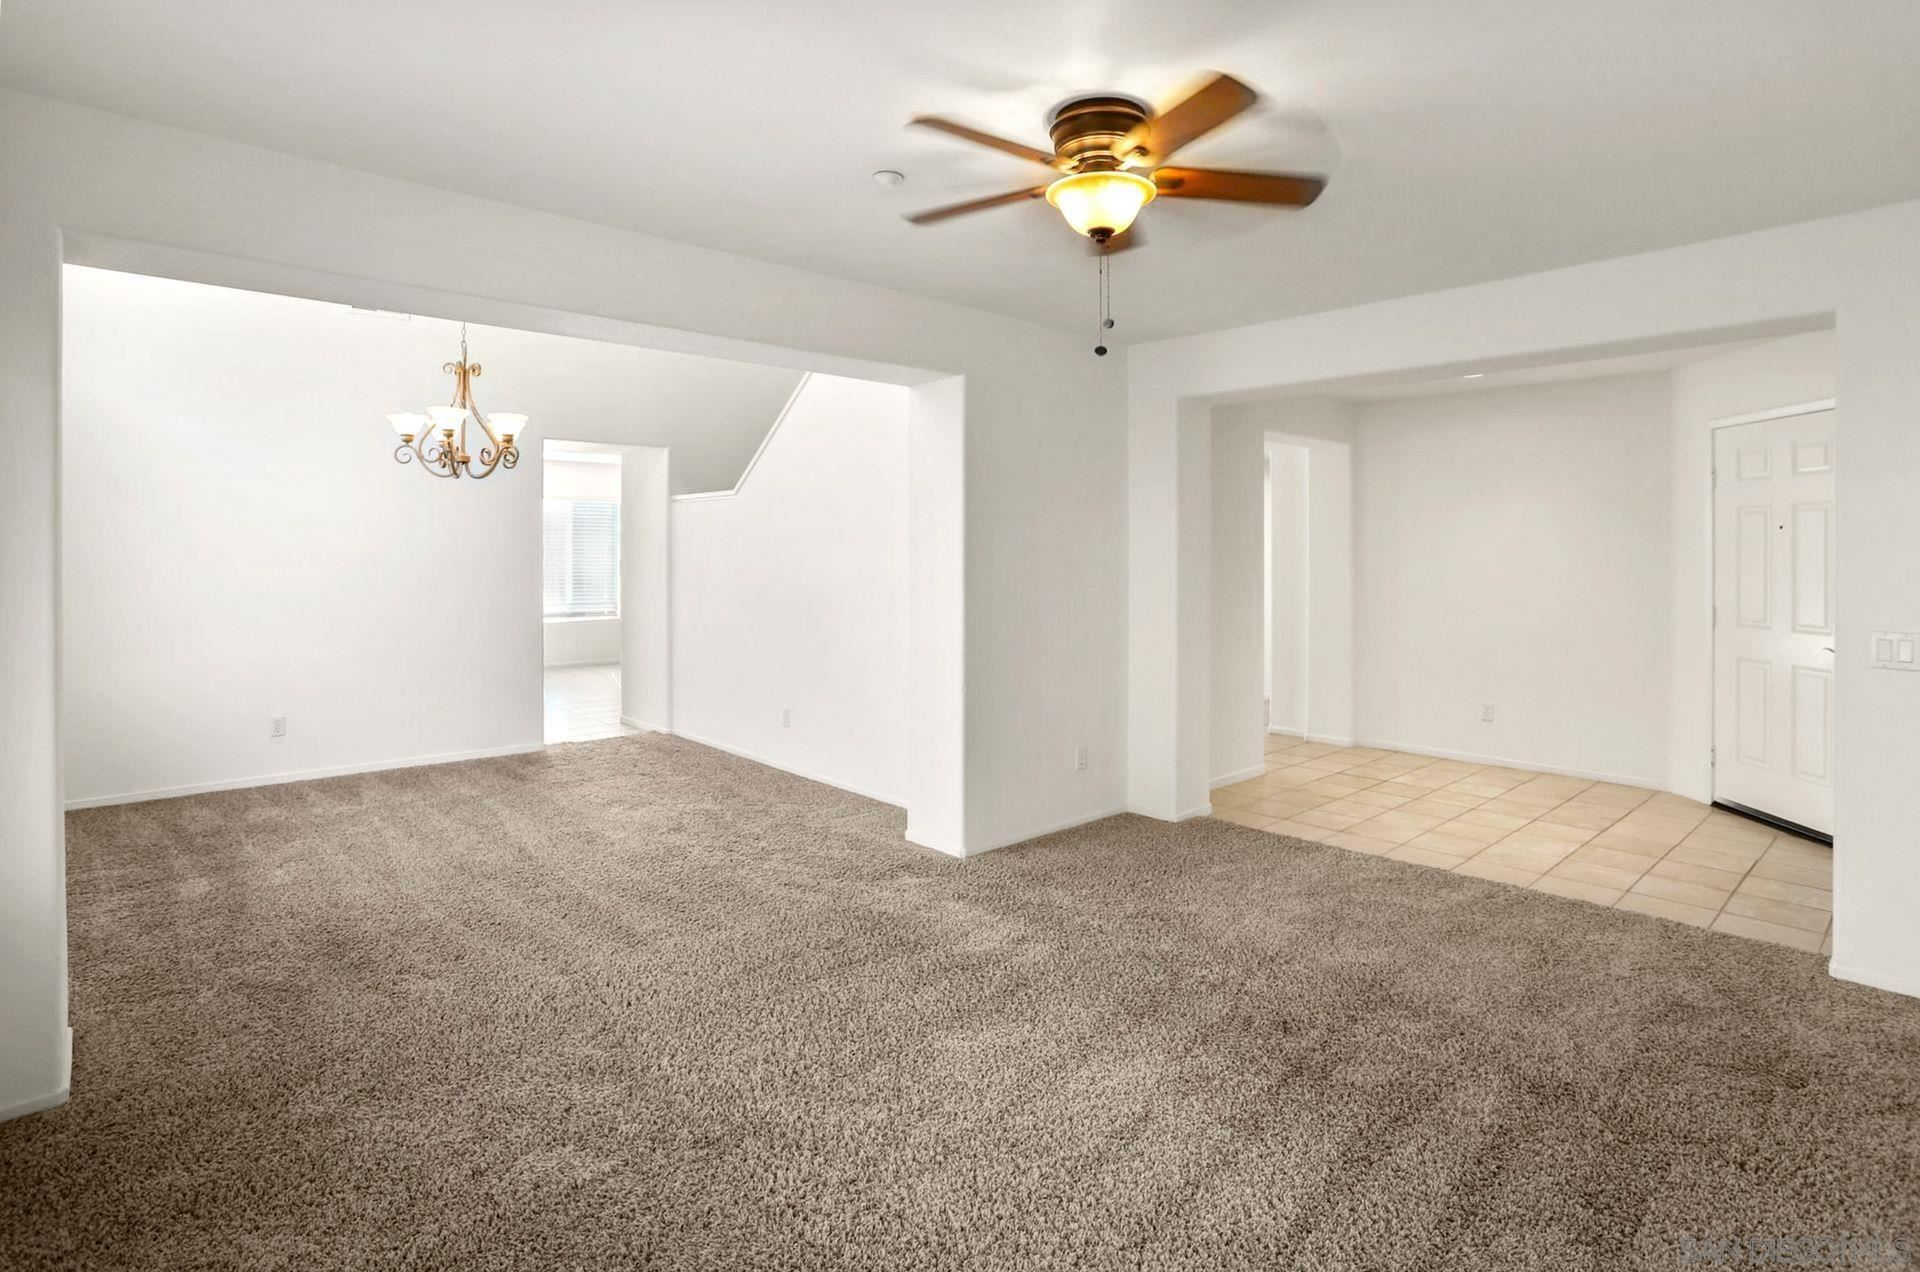 Photo of 2176 Pointe Pkwy, Spring Valley, CA 91978 (MLS # 210029092)